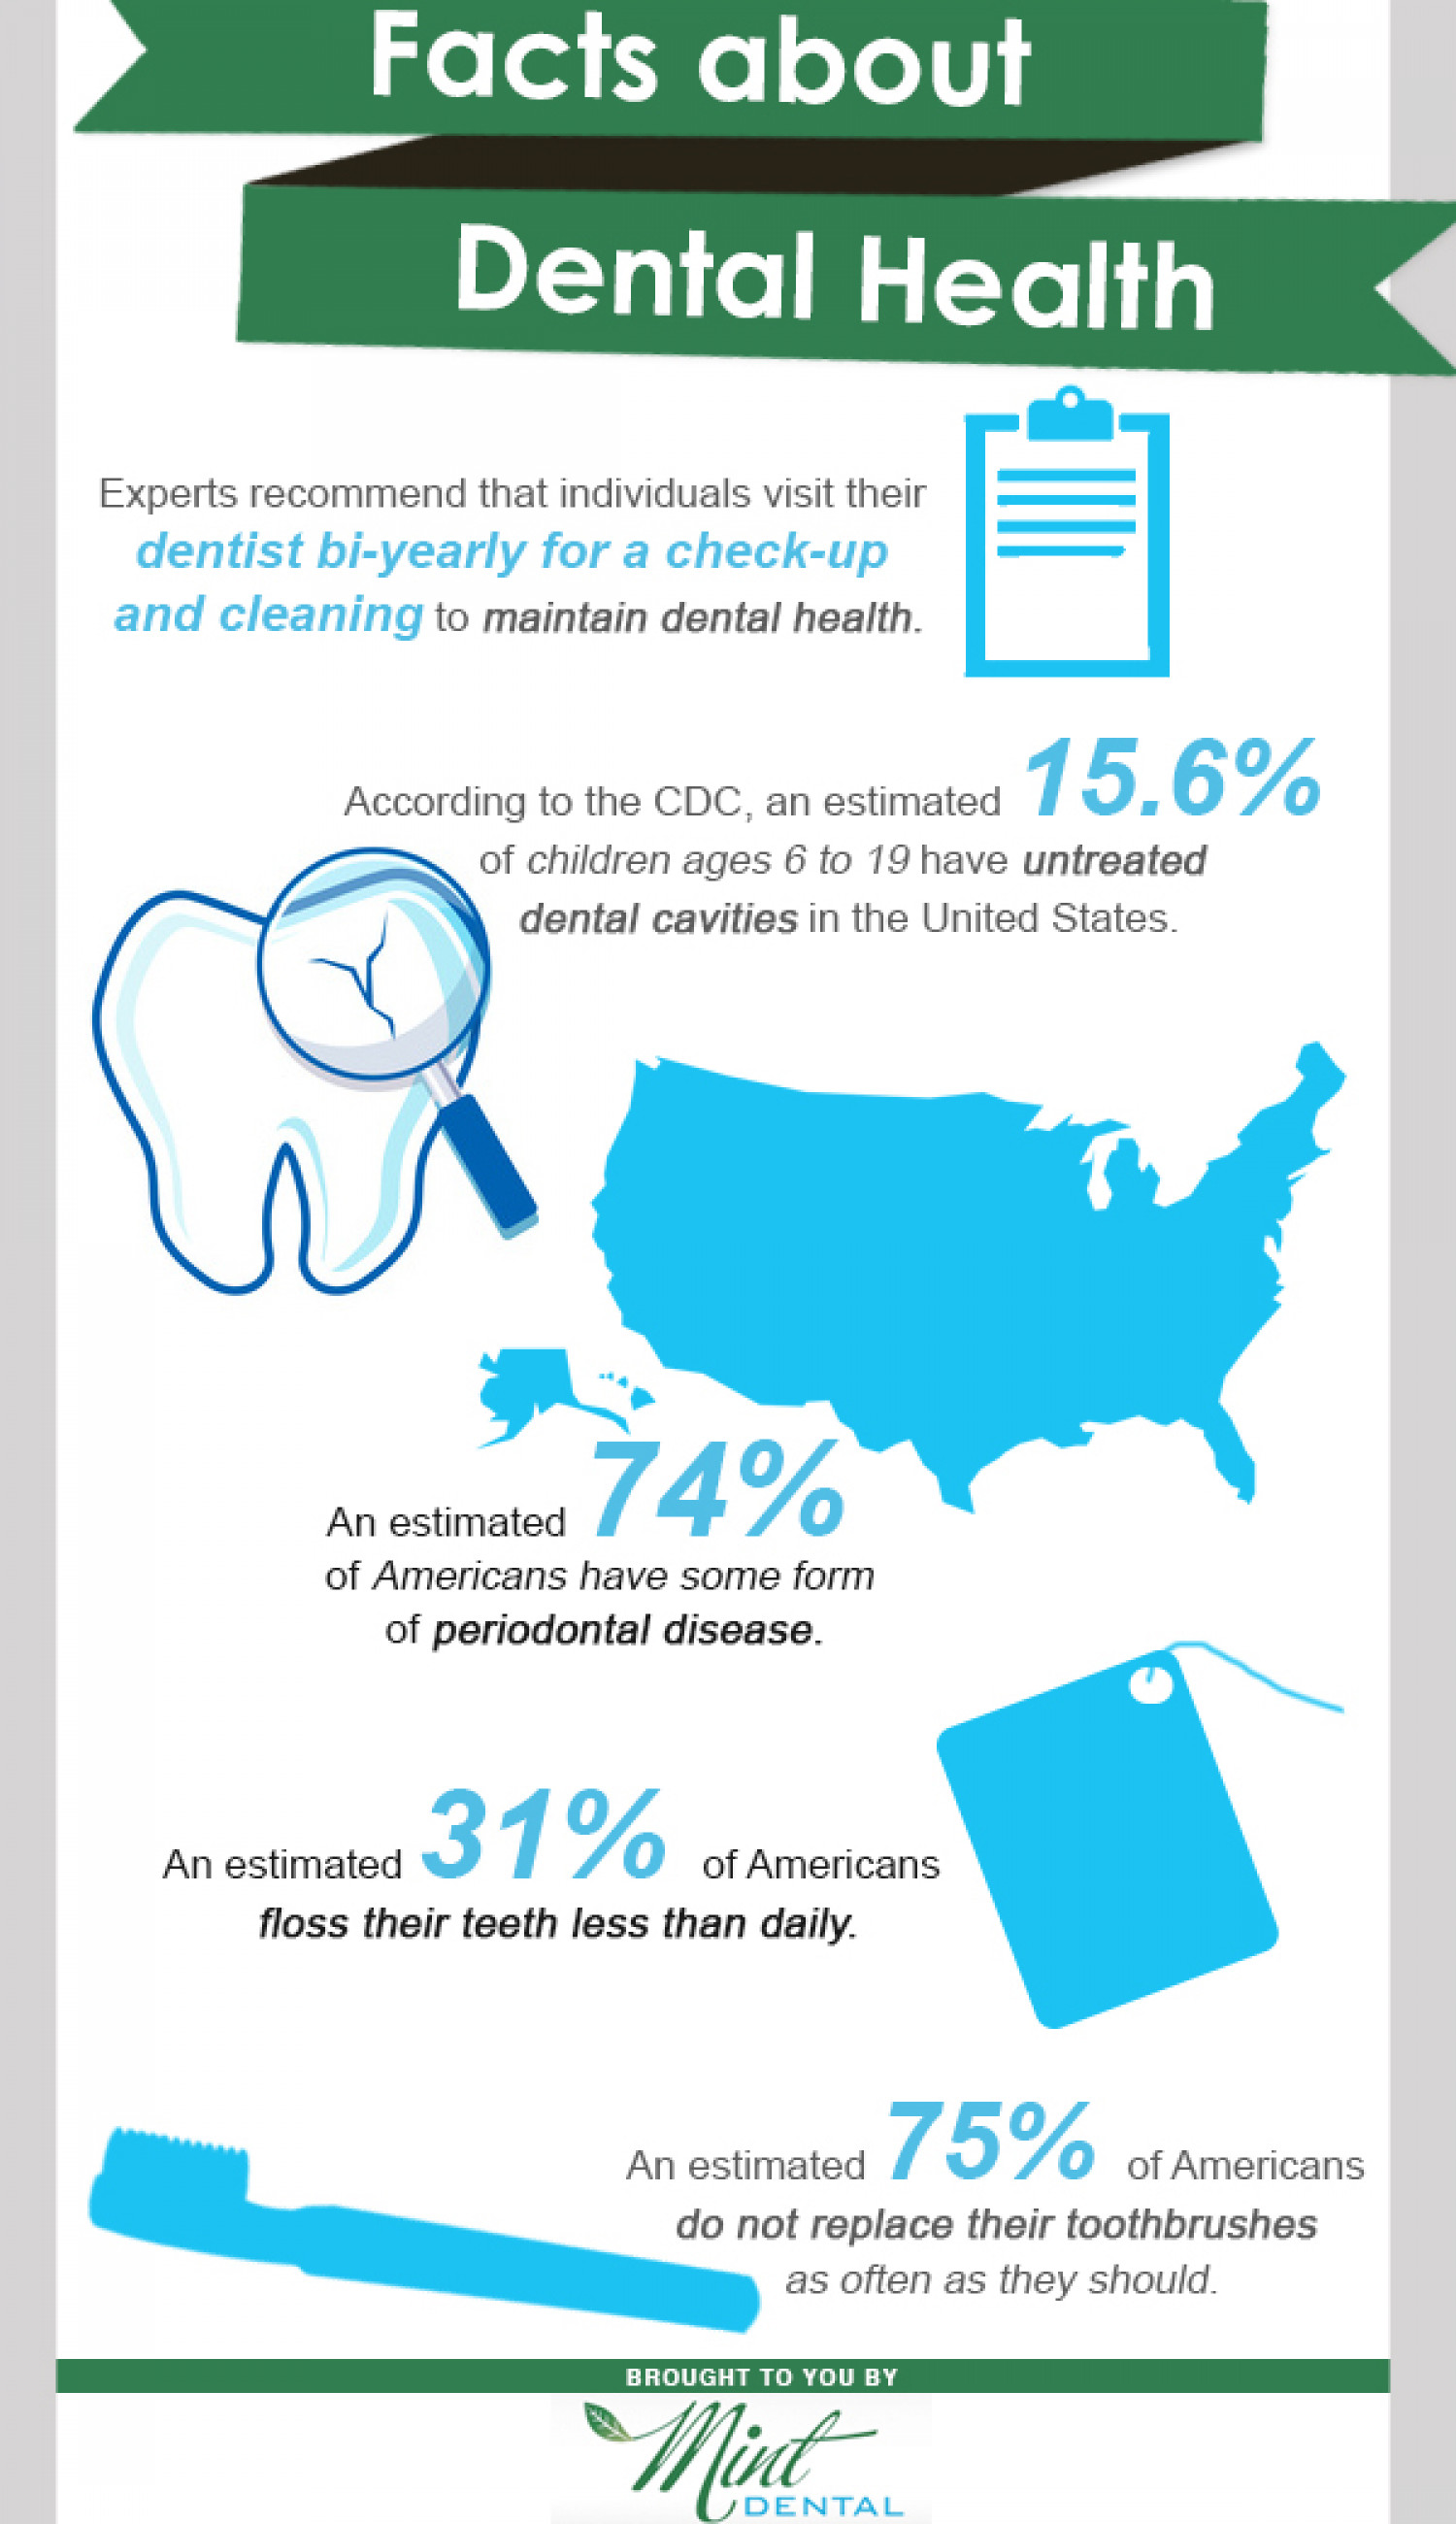 Facts About Dental Health Infographic